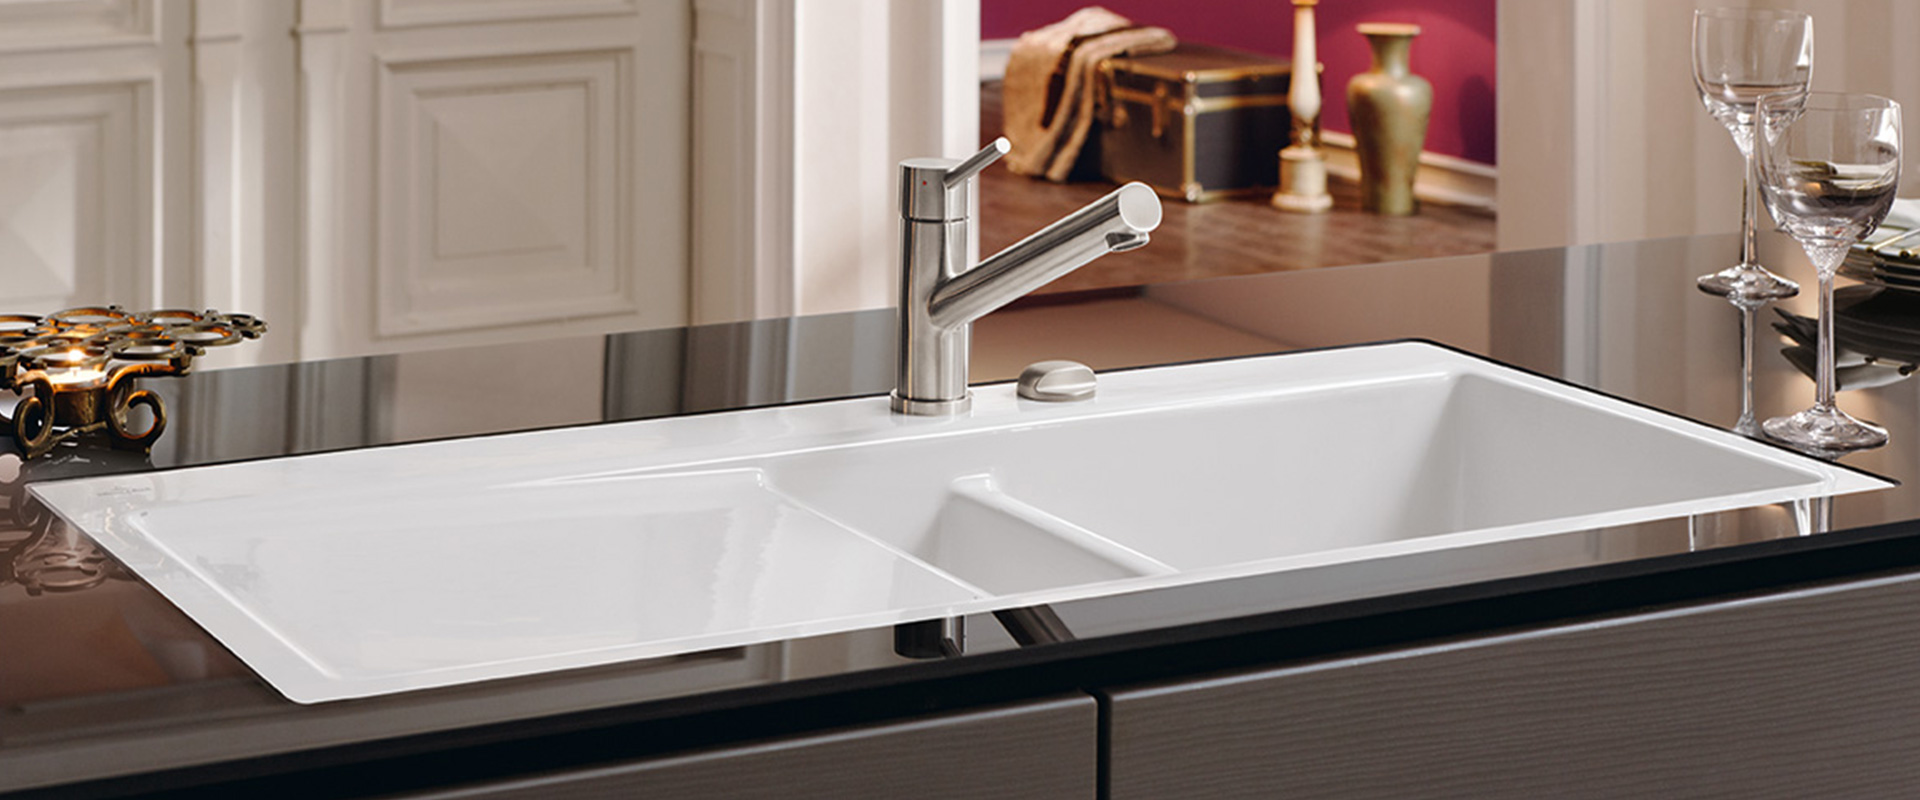 Design your kitchen with villeroy boch - Boch and villeroy ...